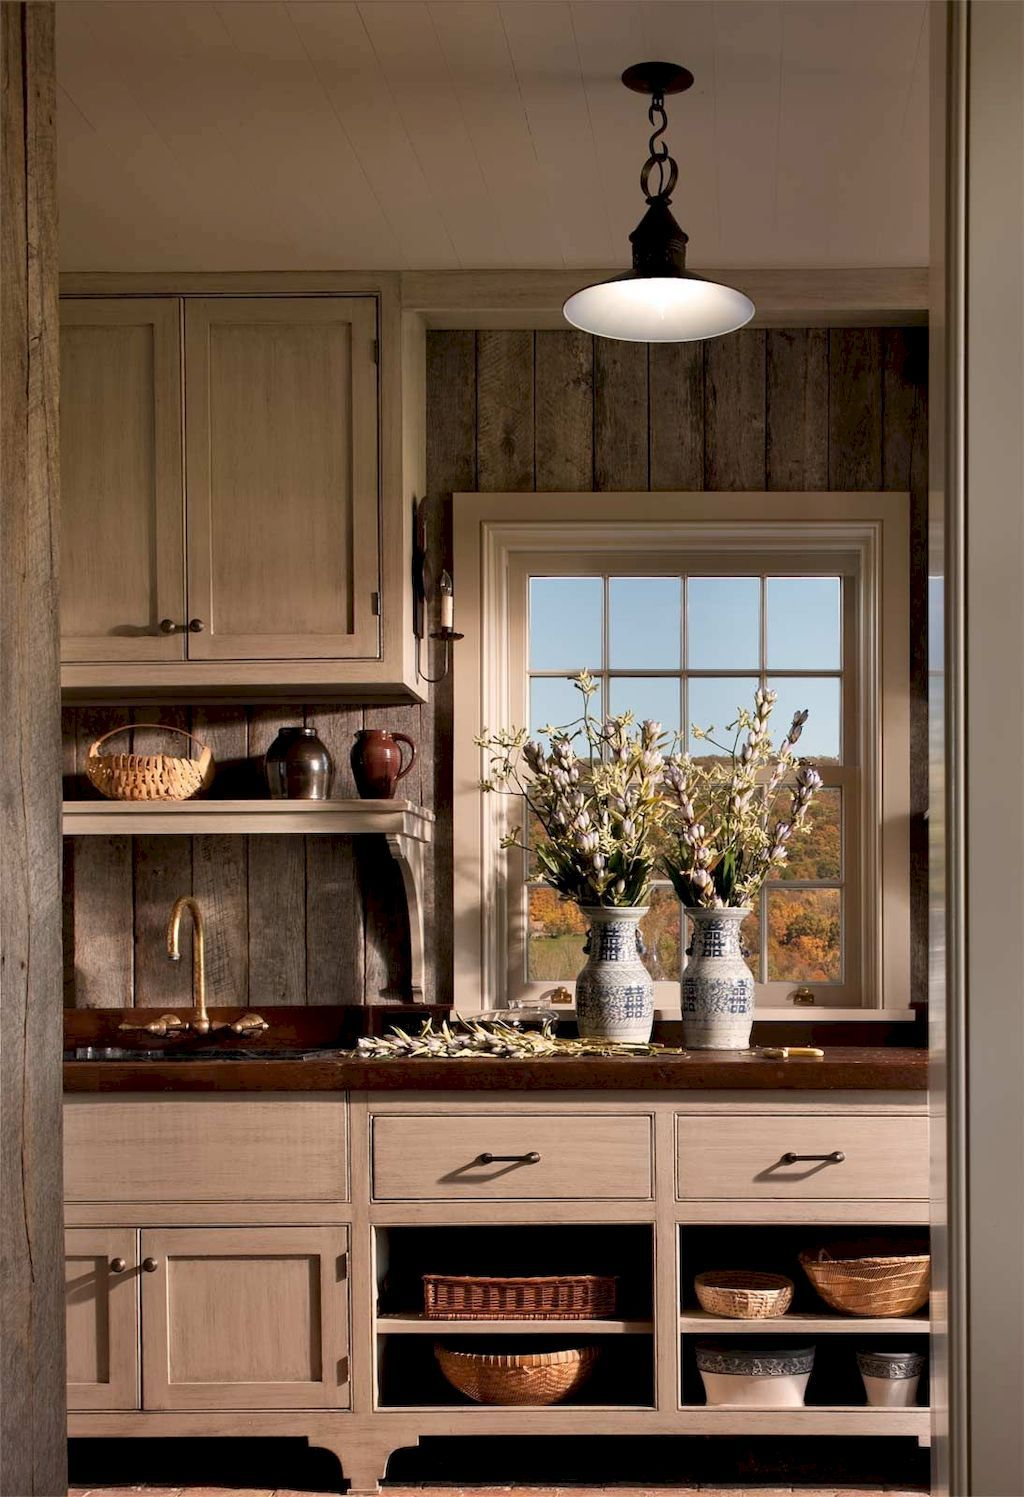 75 beautiful farmhouse kitchen backsplash design ideas rustic kitchen kitchen primitive kitchen on farmhouse kitchen backsplash id=46660